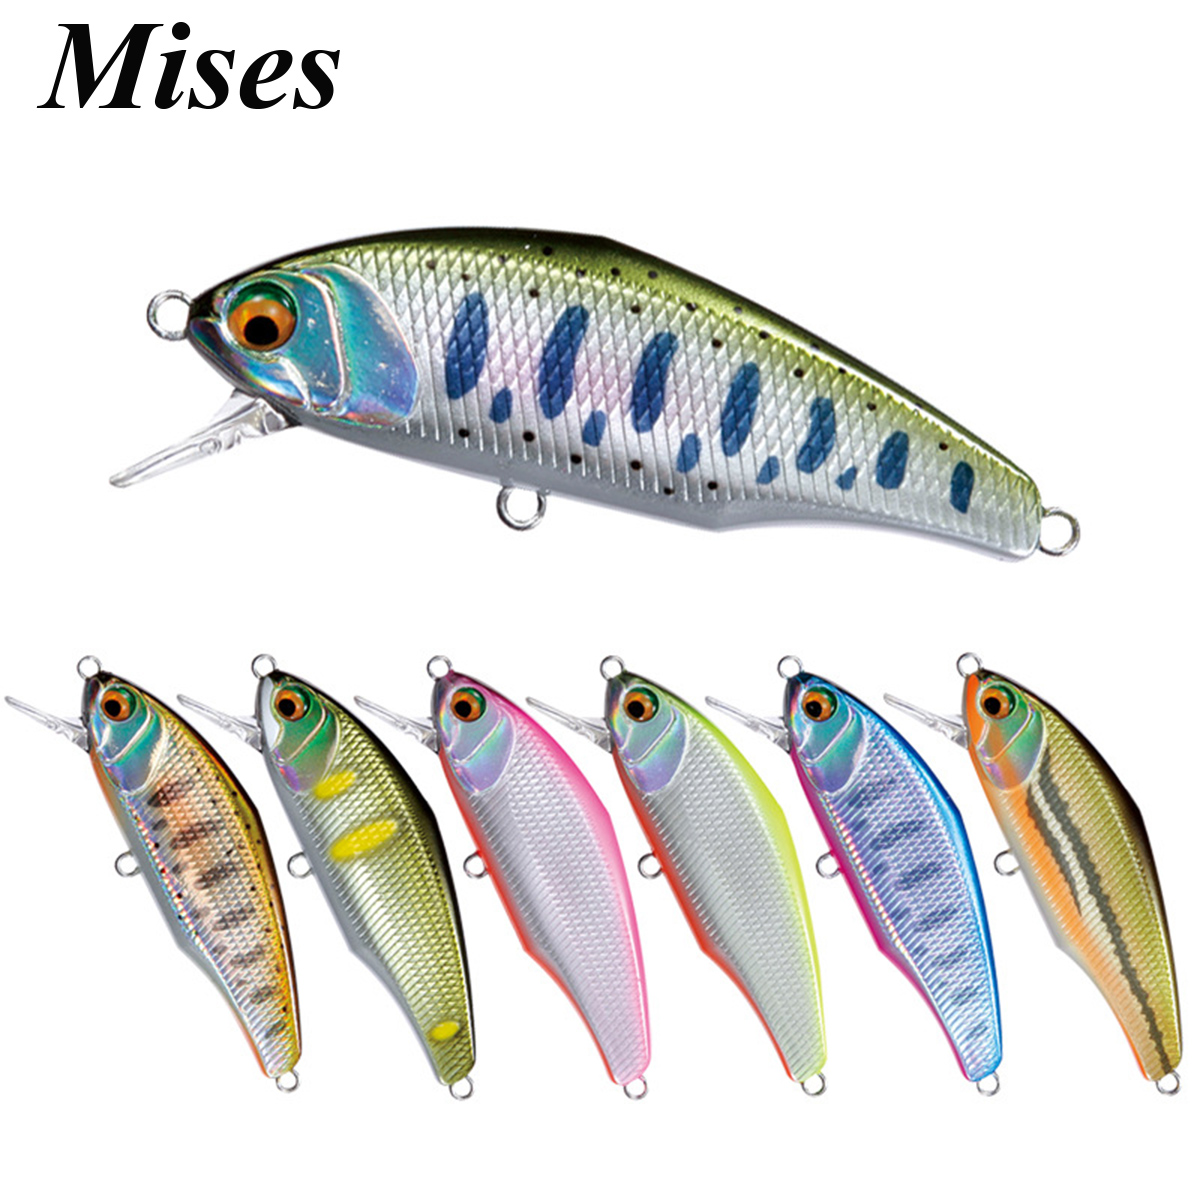 Mises 4.4cm 3.5g Twelve Colors Mini Sinking Bionic Minnow Lure 3D Eyes Artificial Plastic Hard Bait Fishing Lure Fishing Tackles